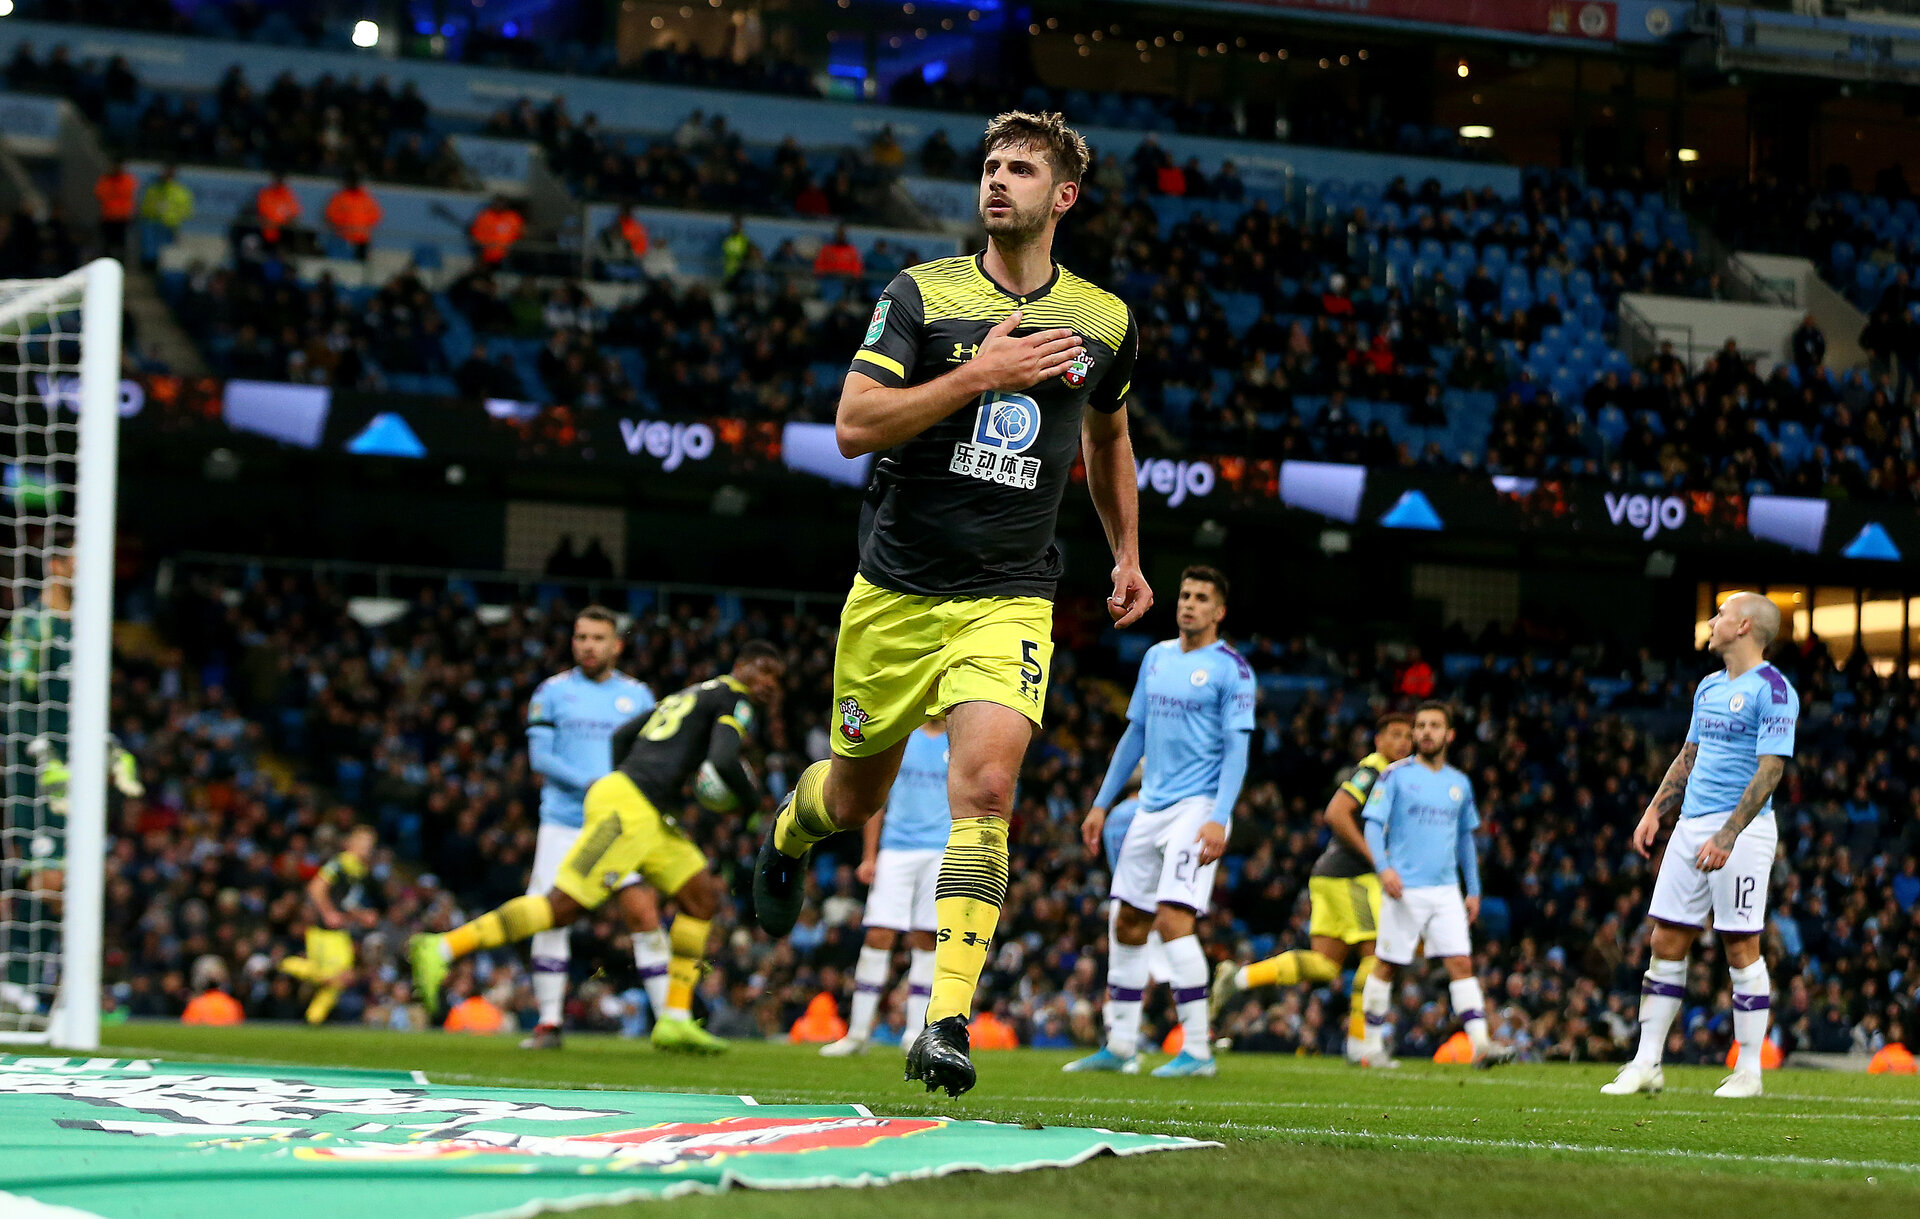 MANCHESTER, ENGLAND - OCTOBER 29: Jack Stephens of Southampton celebrates after pulling a goal back during the Carabao Cup Round of 16 match between Manchester City and Southampton FC at the Etihad Stadium on October 29, 2019 in Manchester, England. (Photo by Matt Watson/Southampton FC via Getty Images)